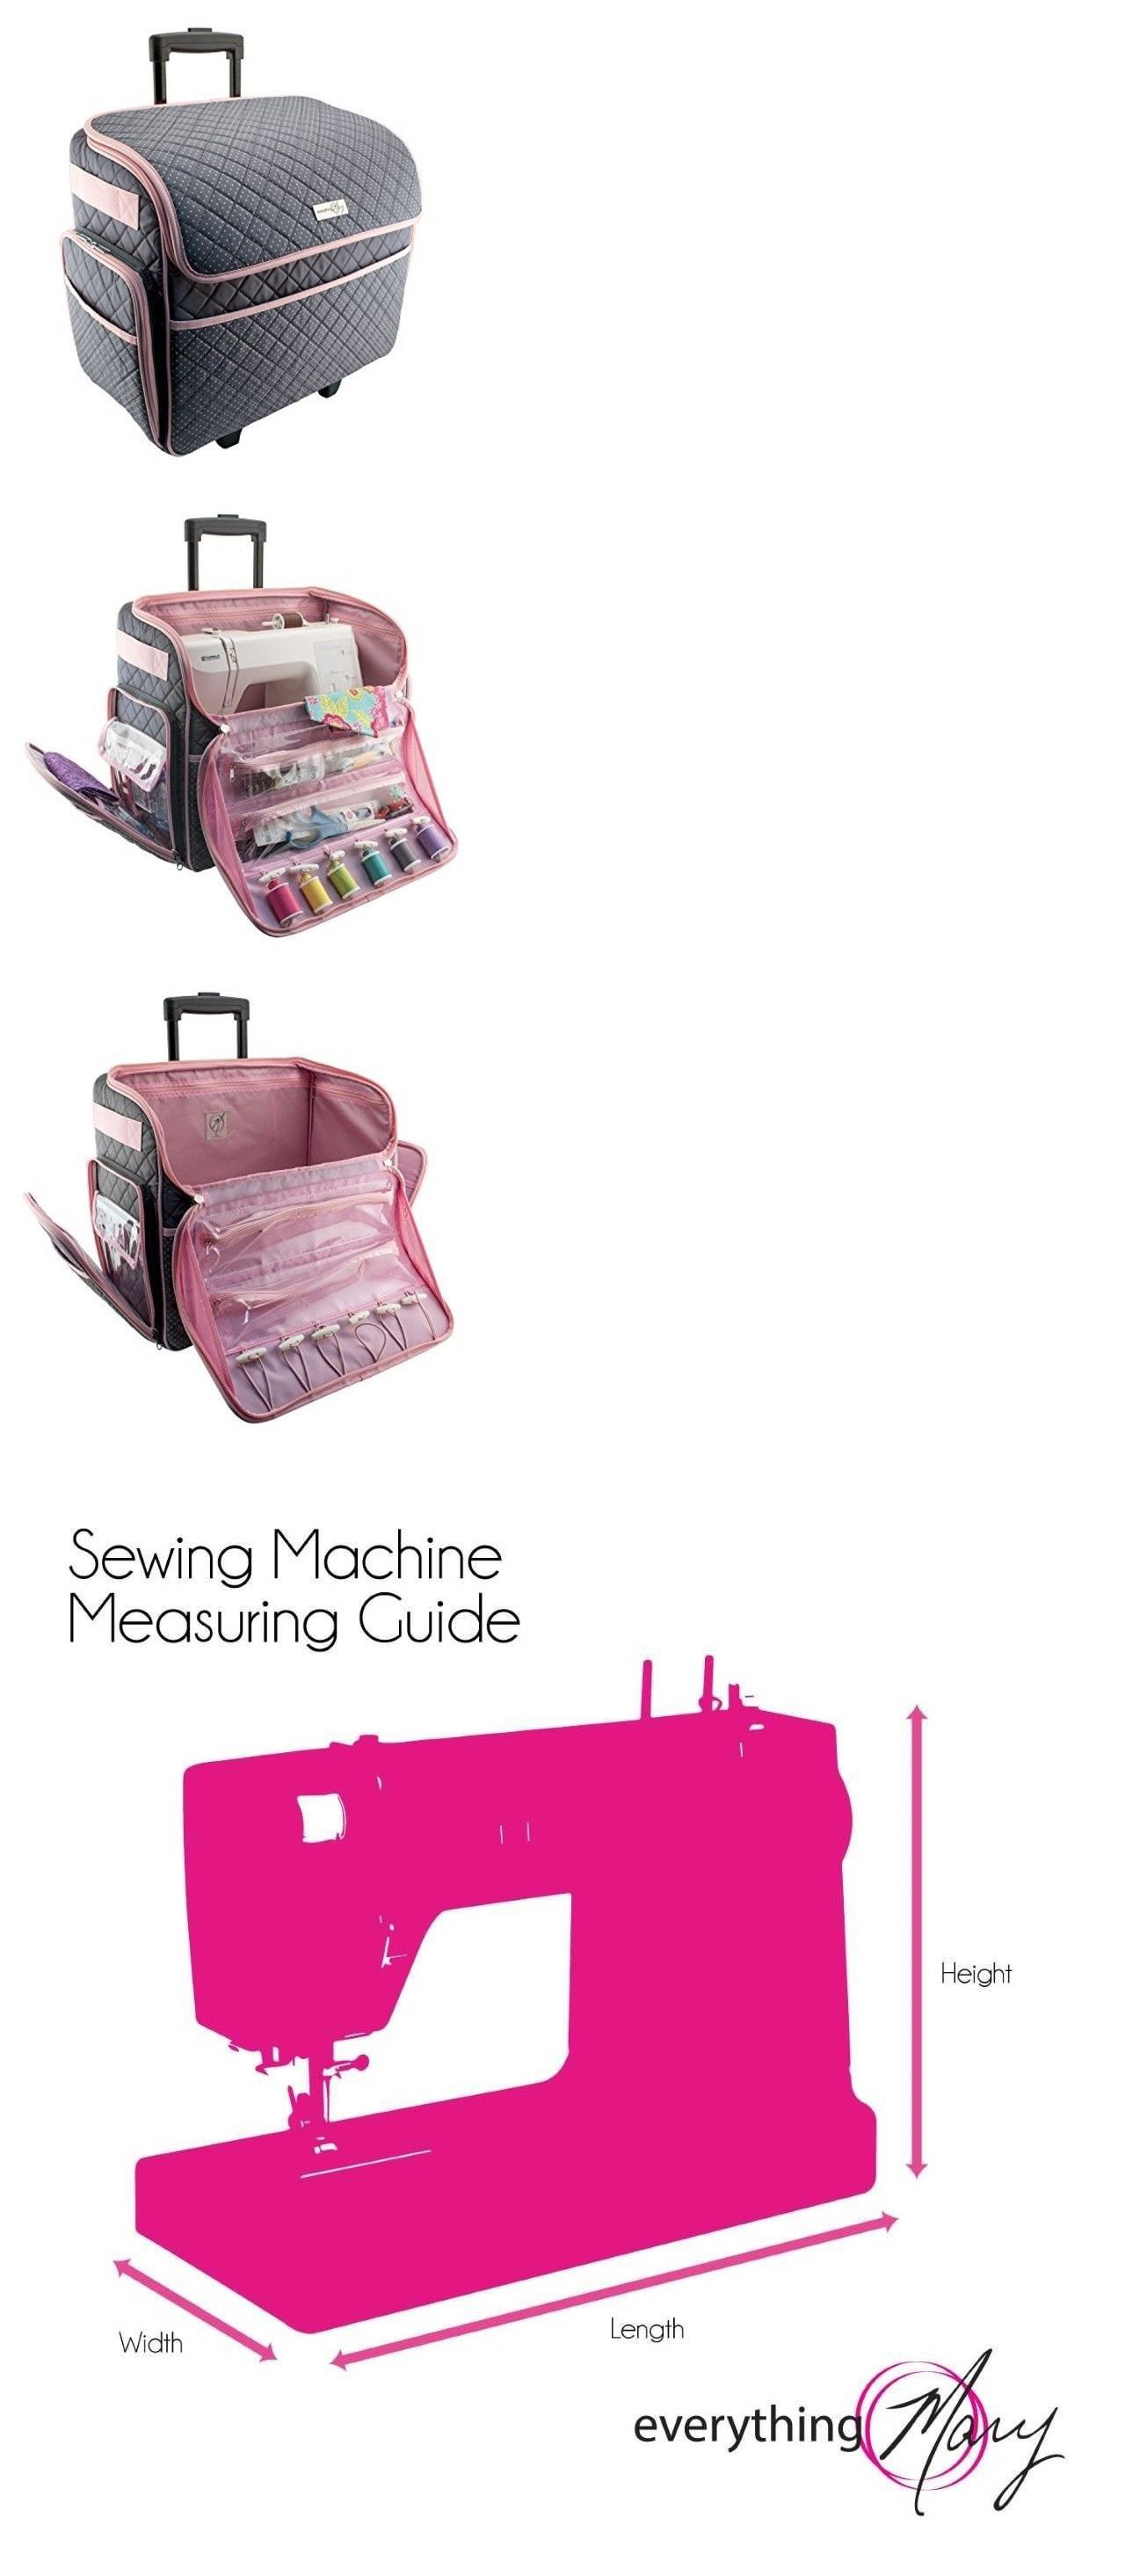 0434ca8154 Scrapbooking Totes 146401  Sewing Machine Case On Wheels Rolling Tote  Carrying Luggage Travel Storage Carry -  BUY IT NOW ONLY   123.95 on eBay!